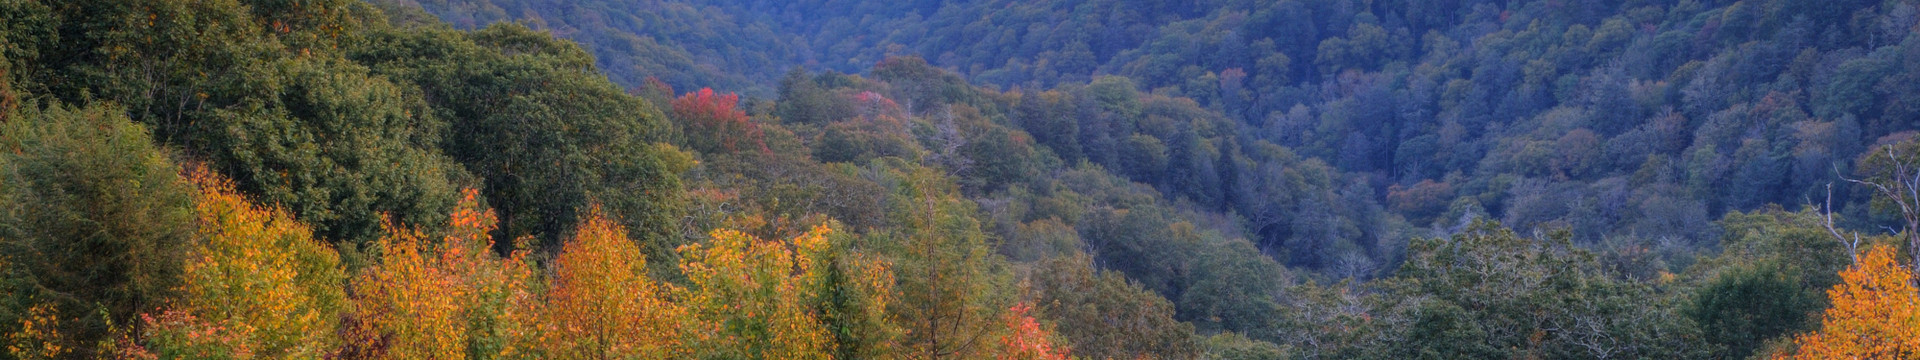 Gatlinburg Taste Of Autumn - fall in the Smokies